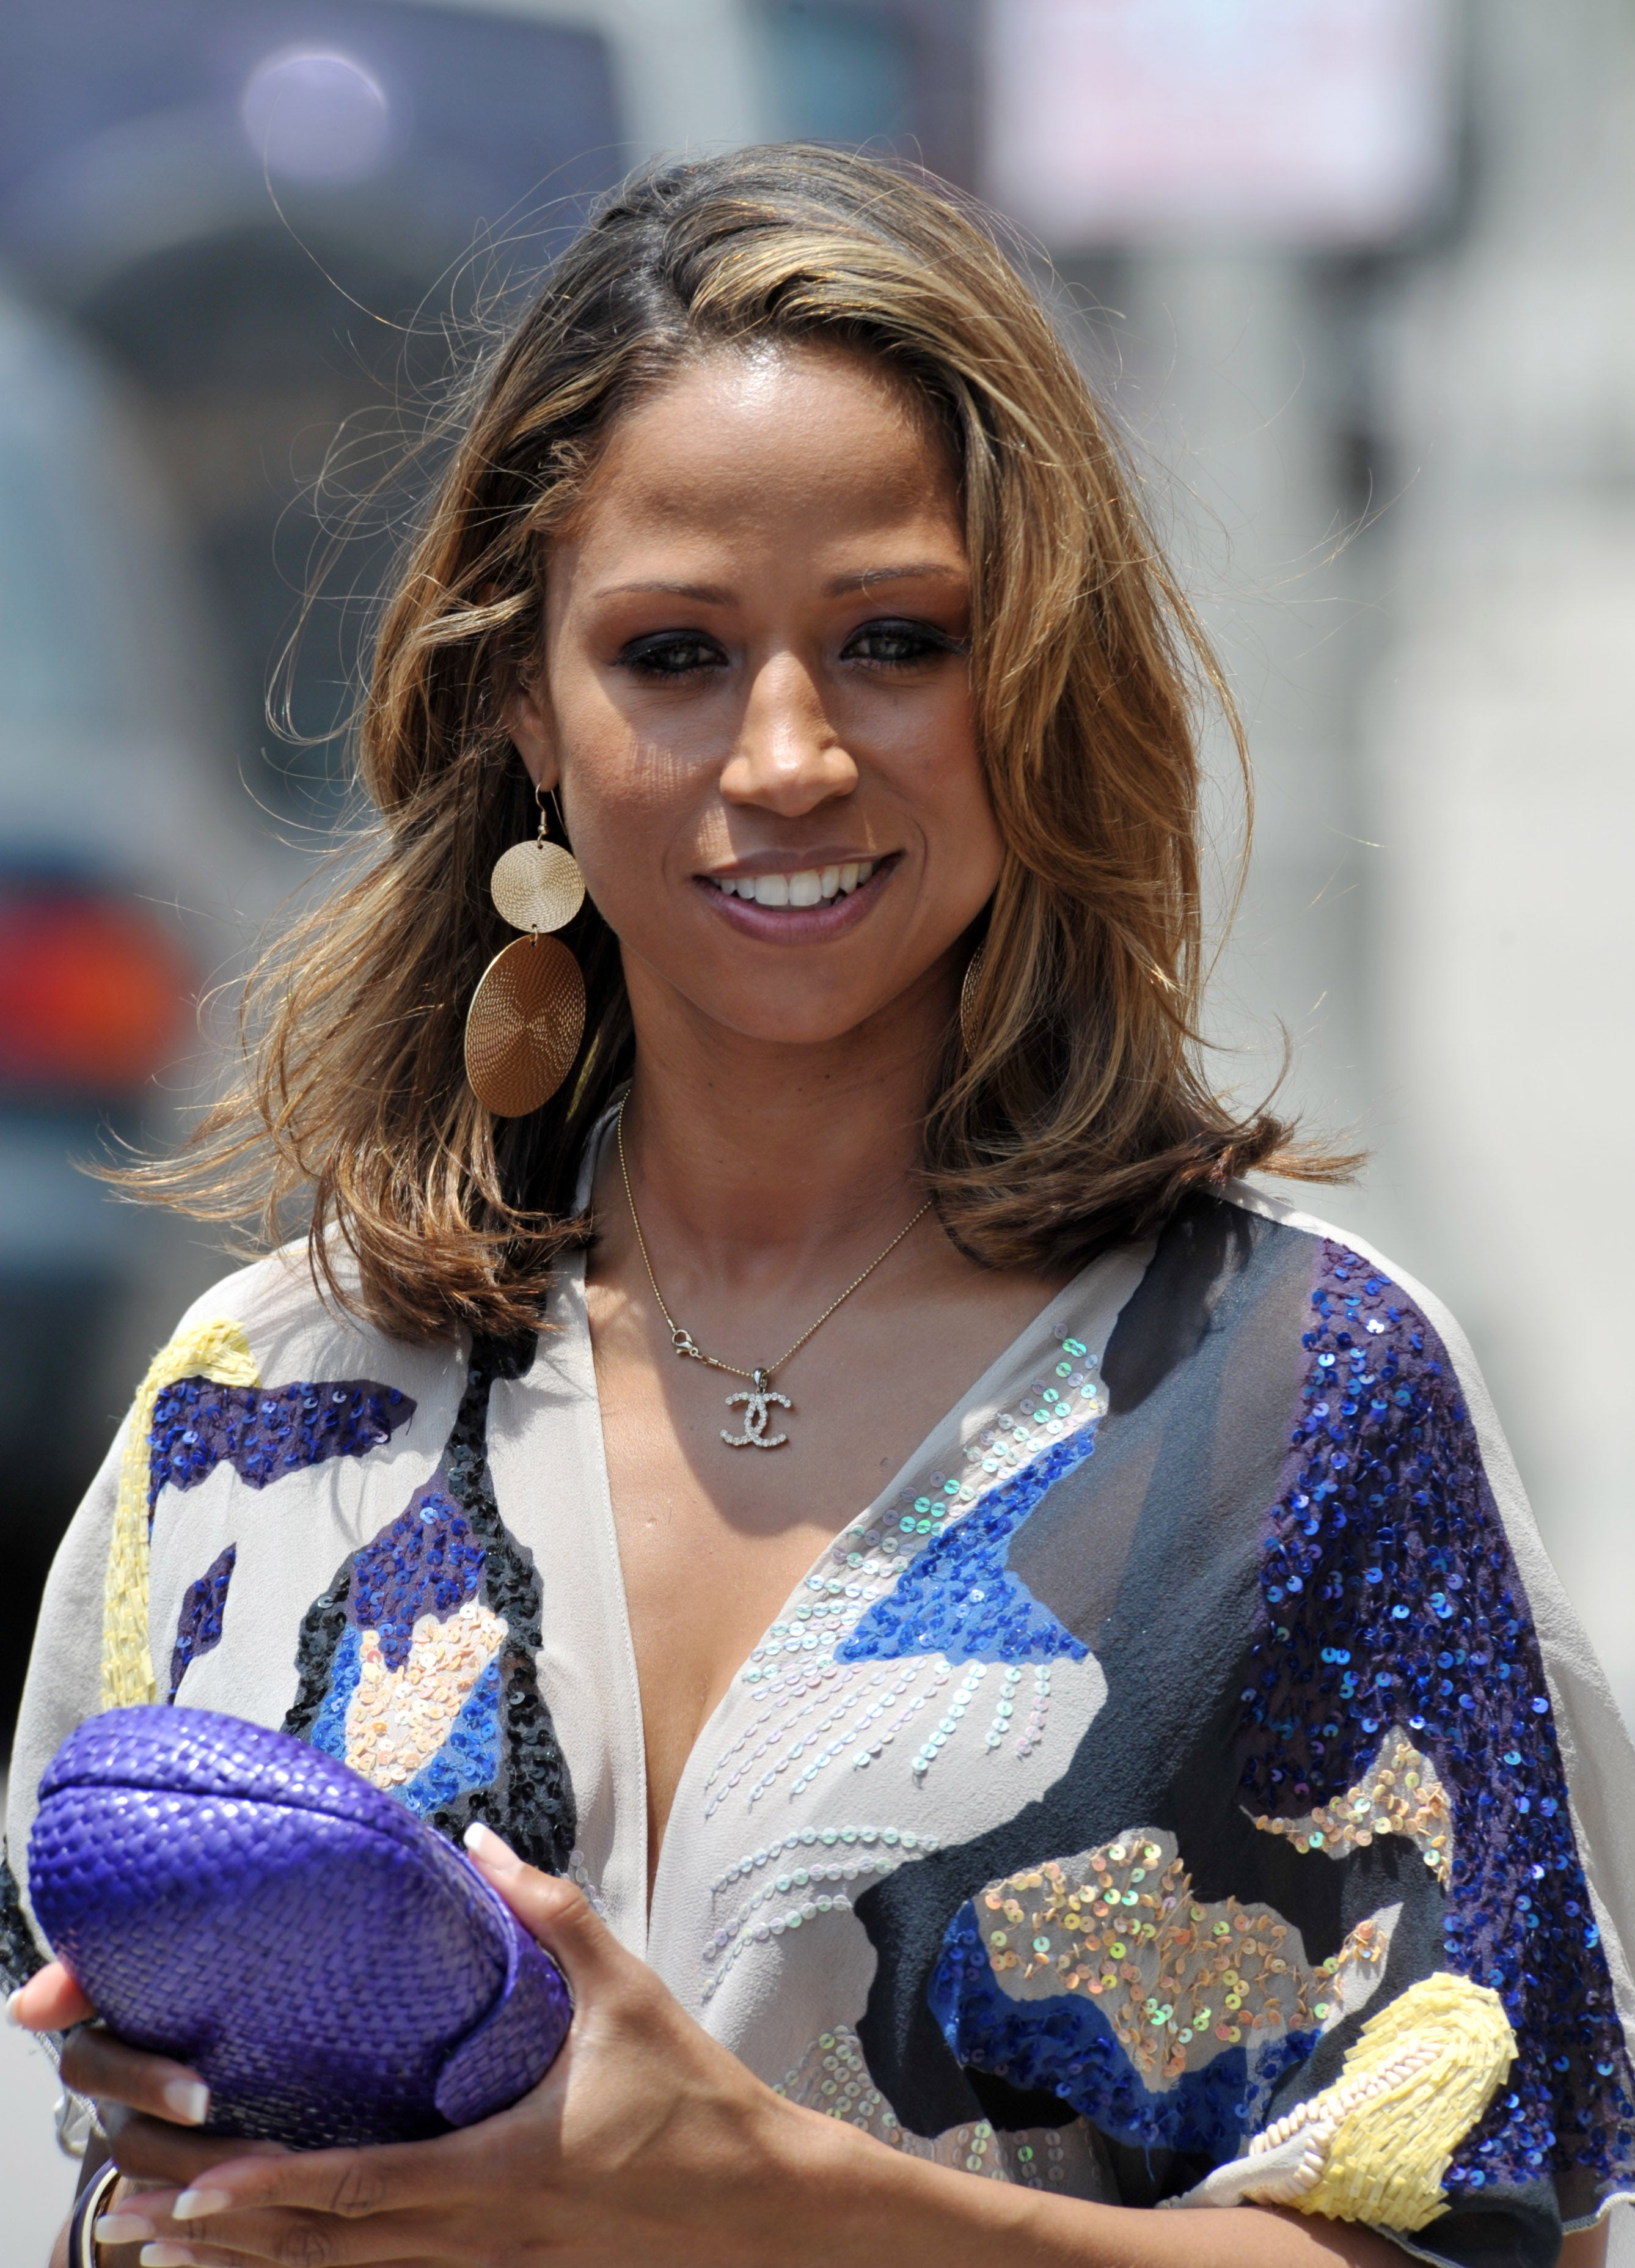 Stacey Dash Launches Music Career with Dance Track - Essence